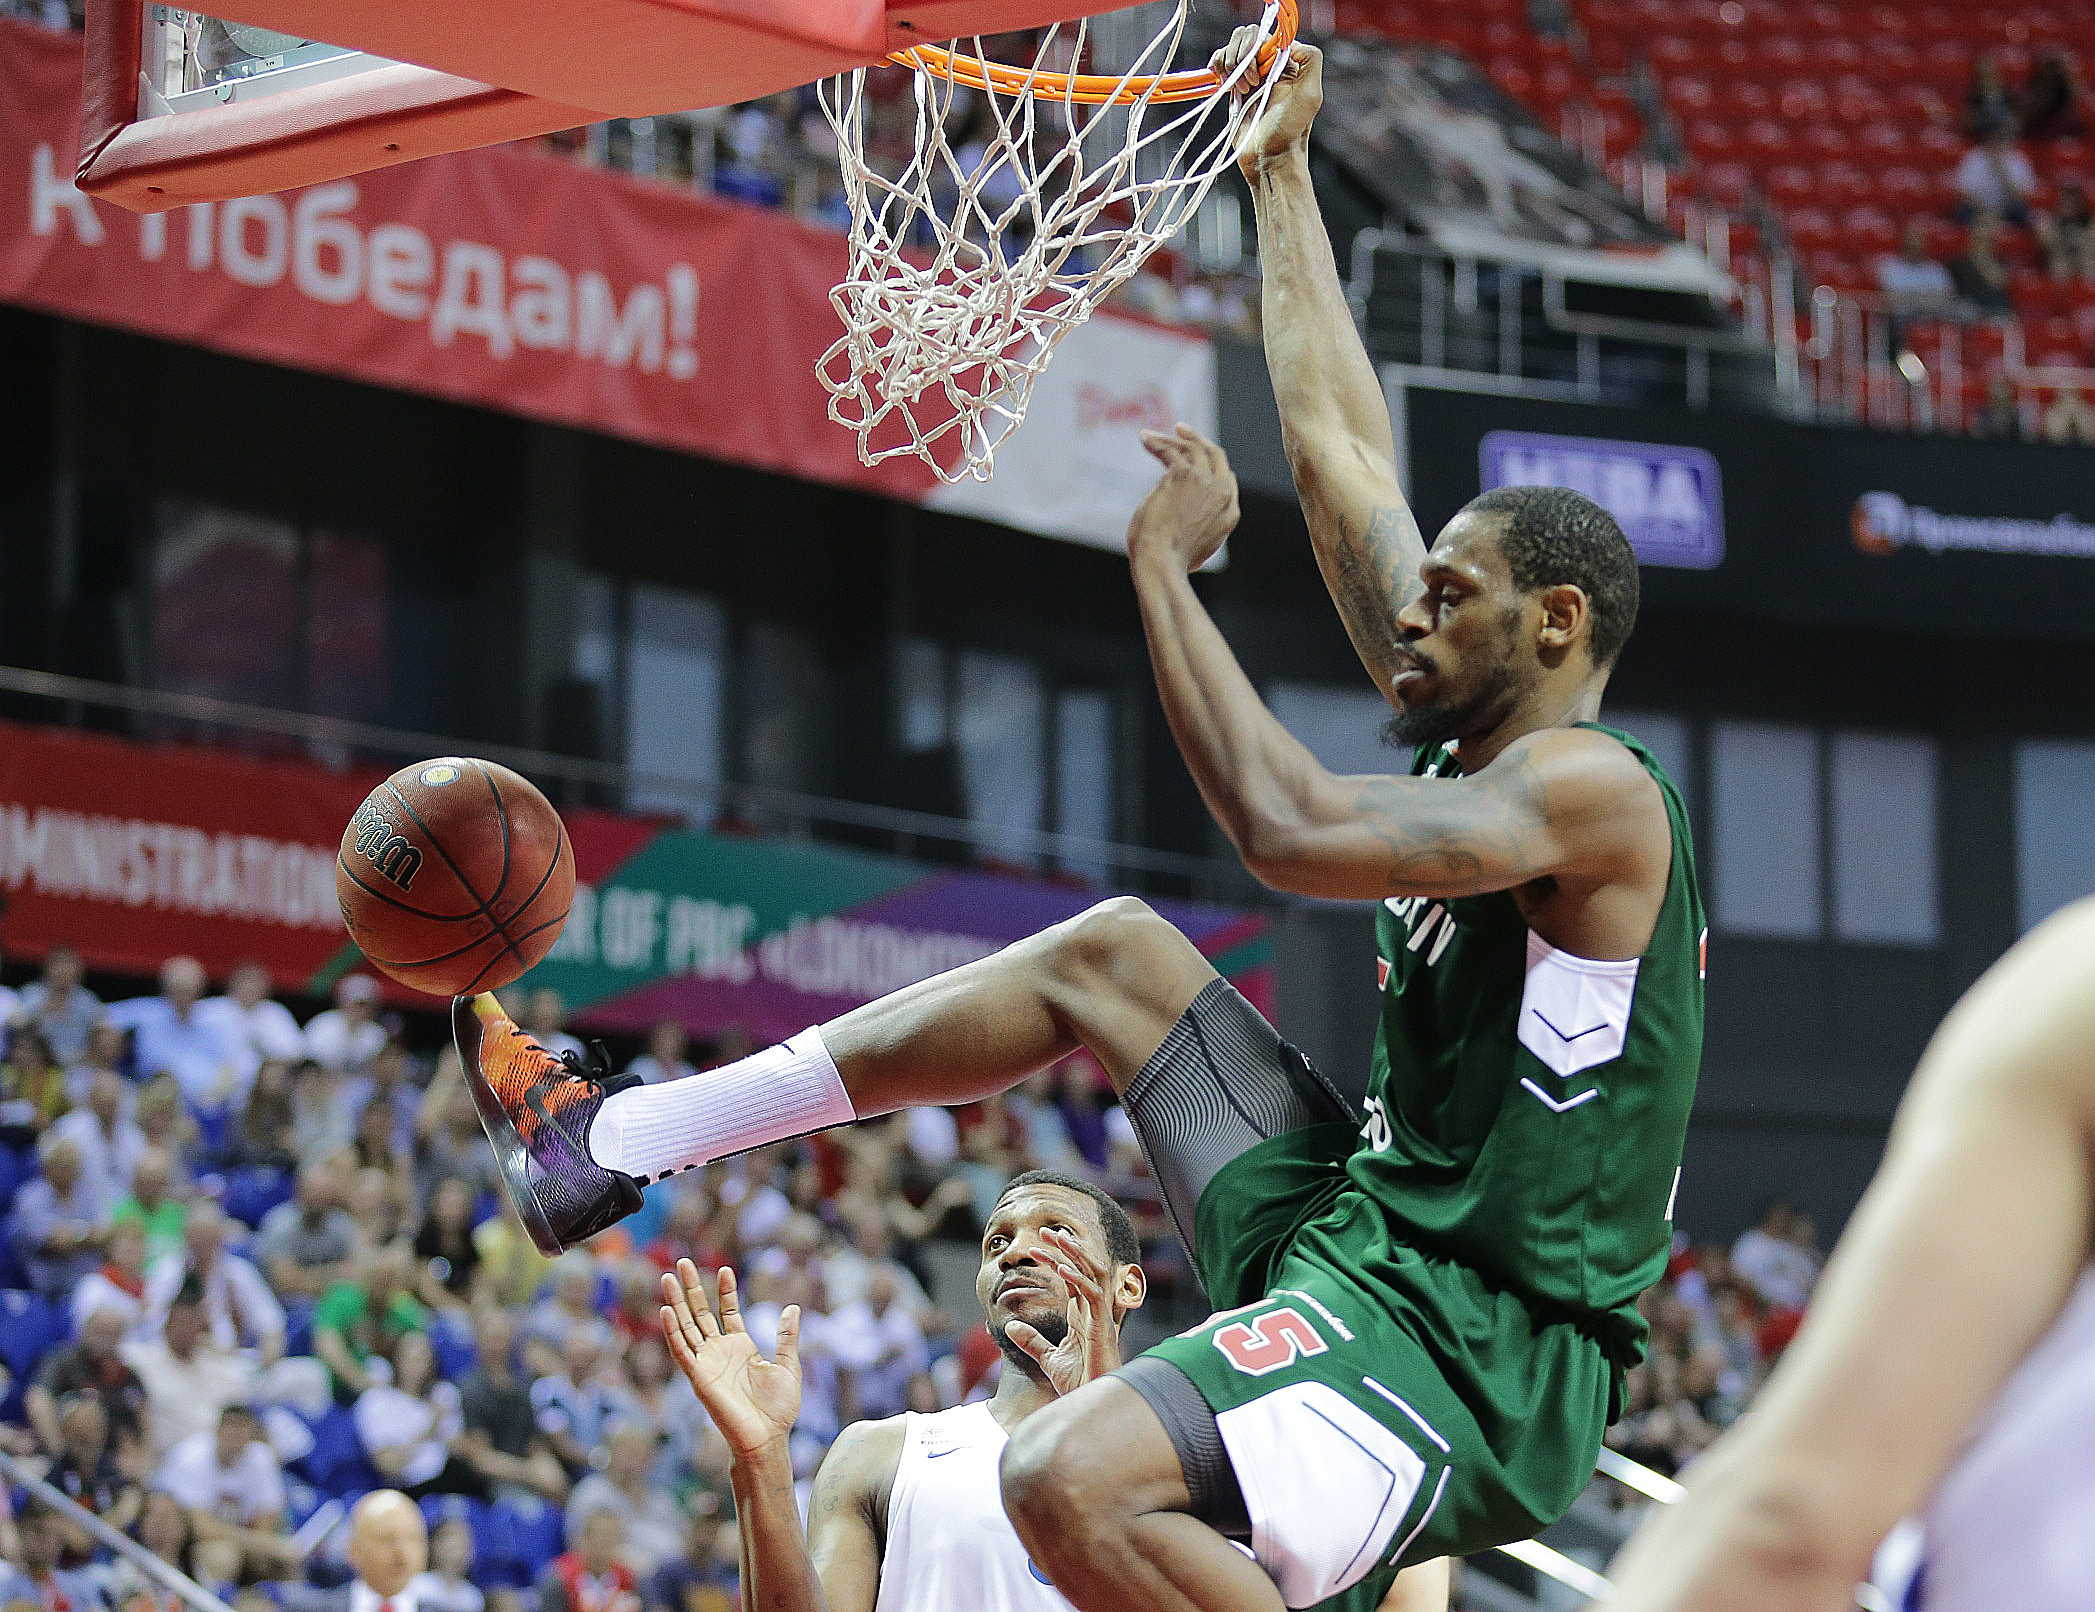 Kuban Wipes Out Enisey's Playoff Hopes